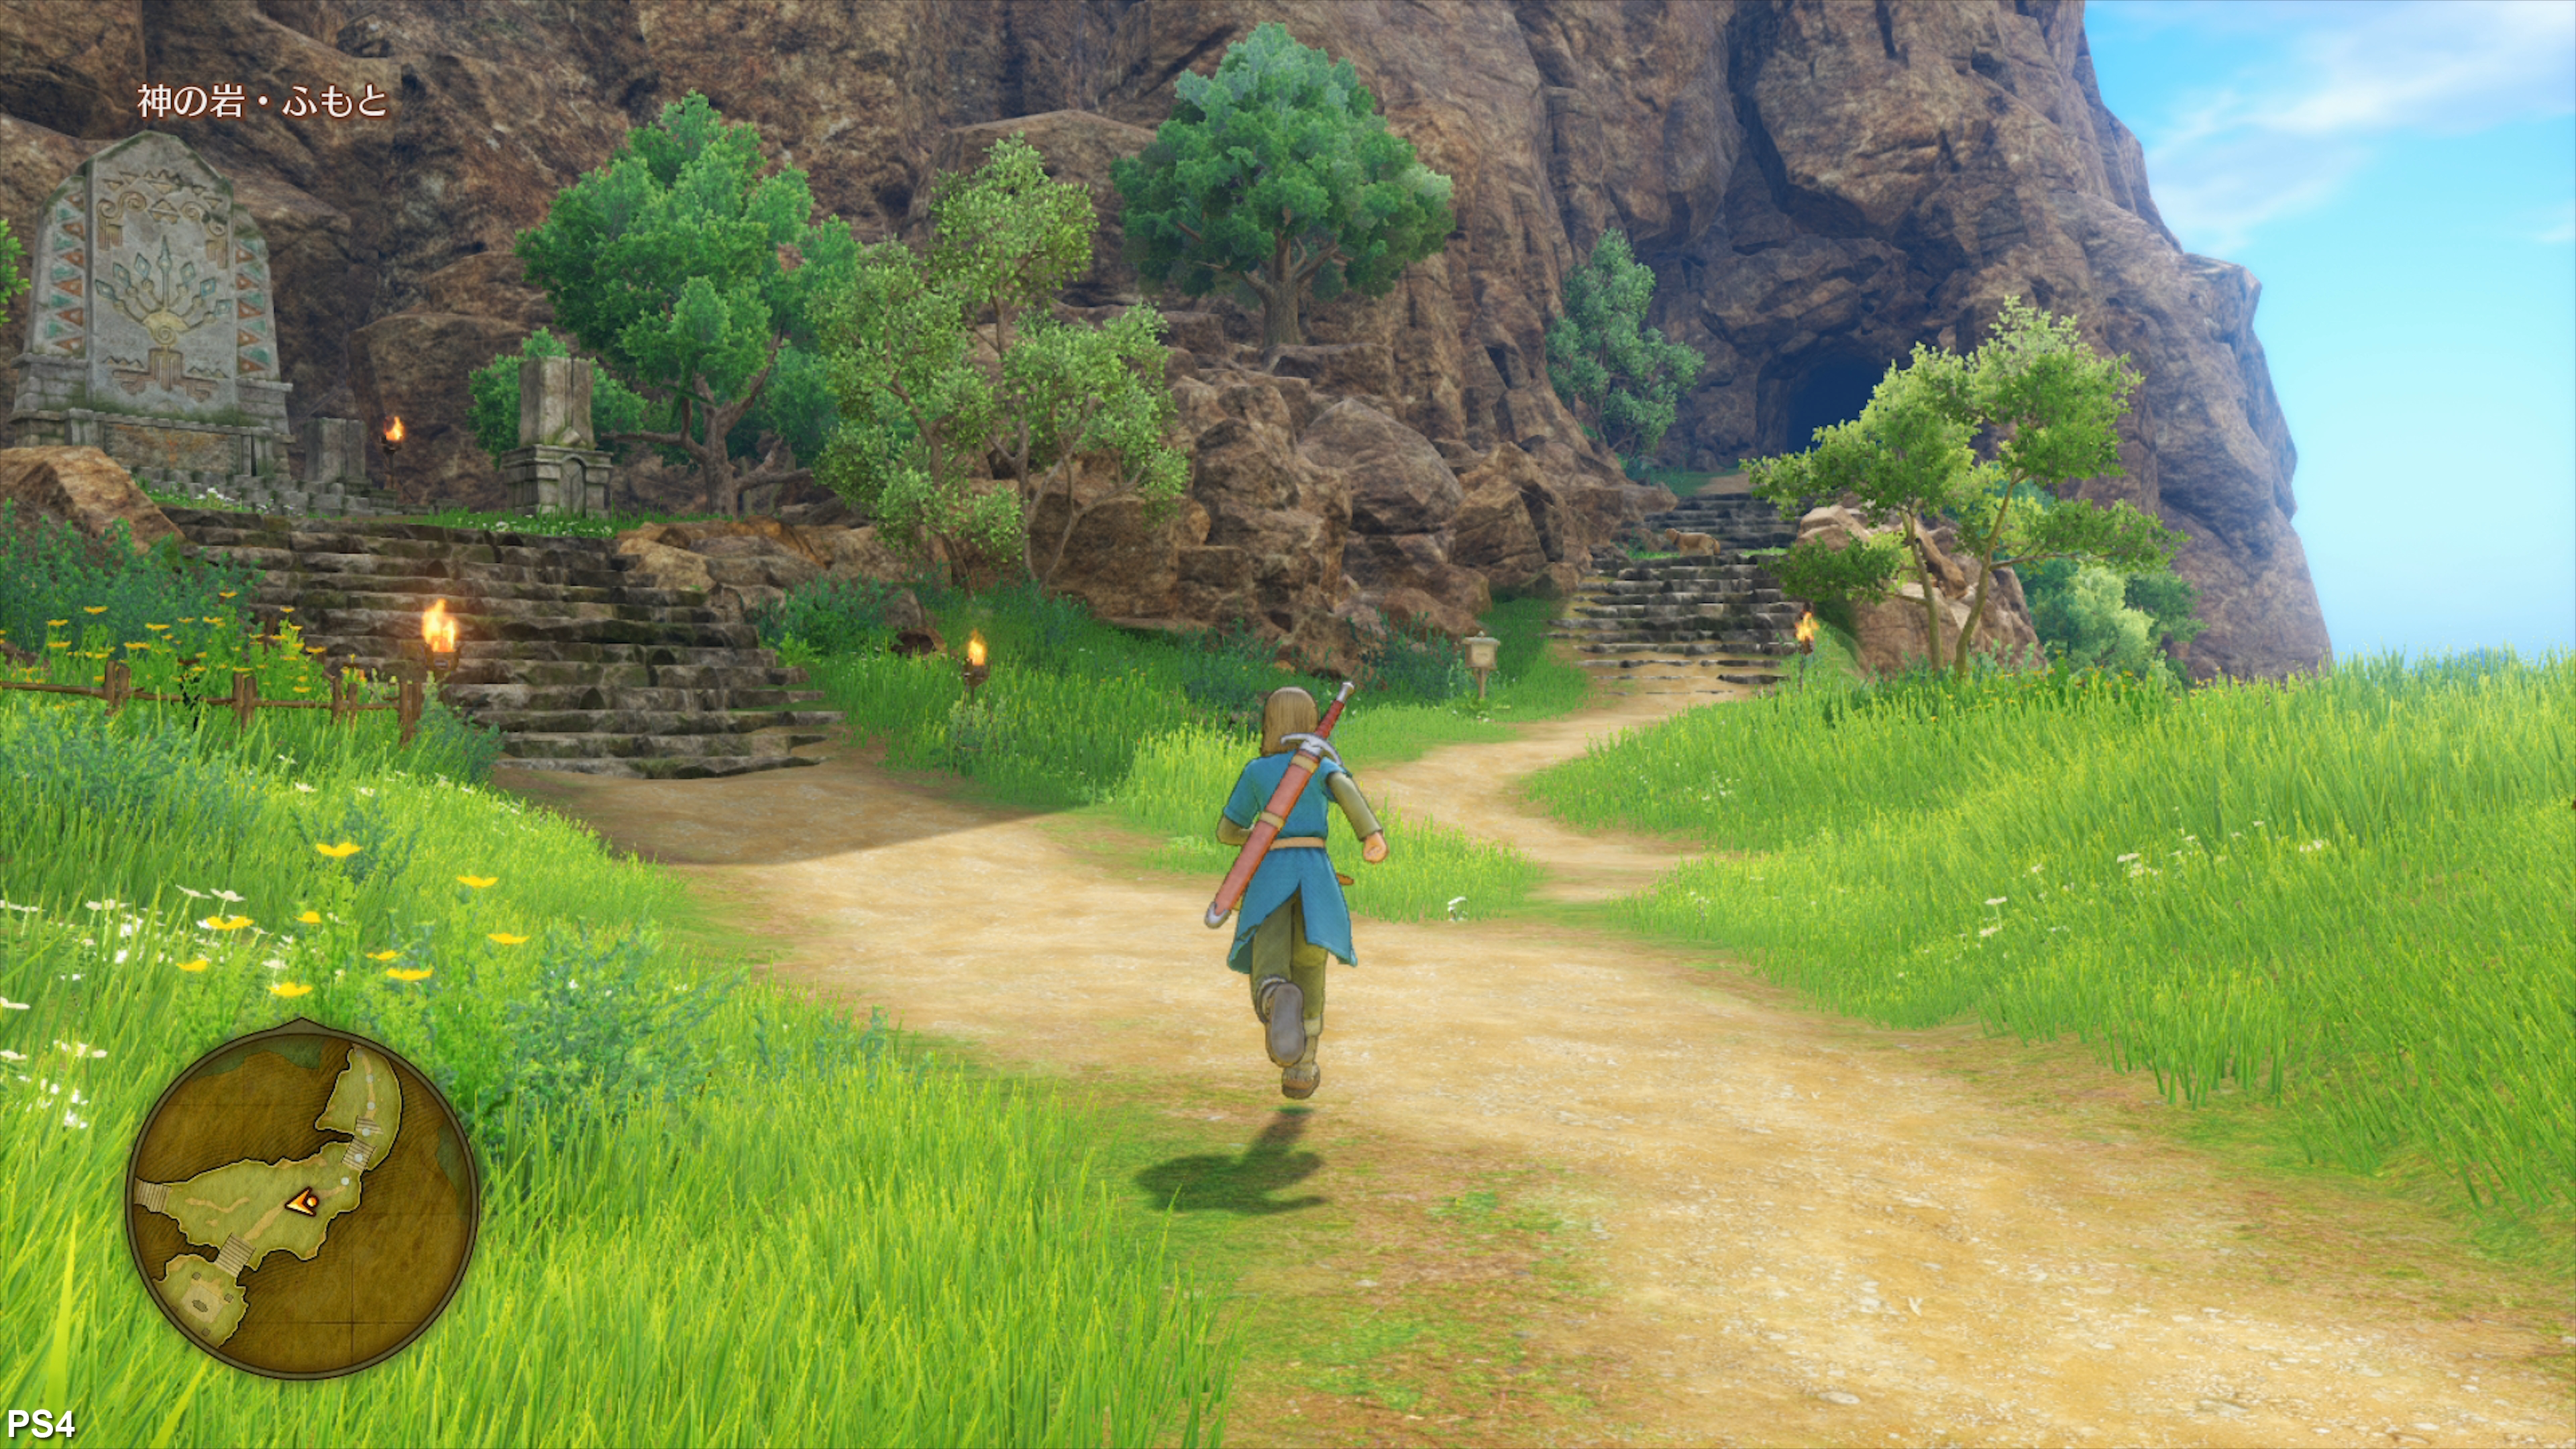 Dragon Quest 11: is Unreal Engine 4 a good fit for JRPGs